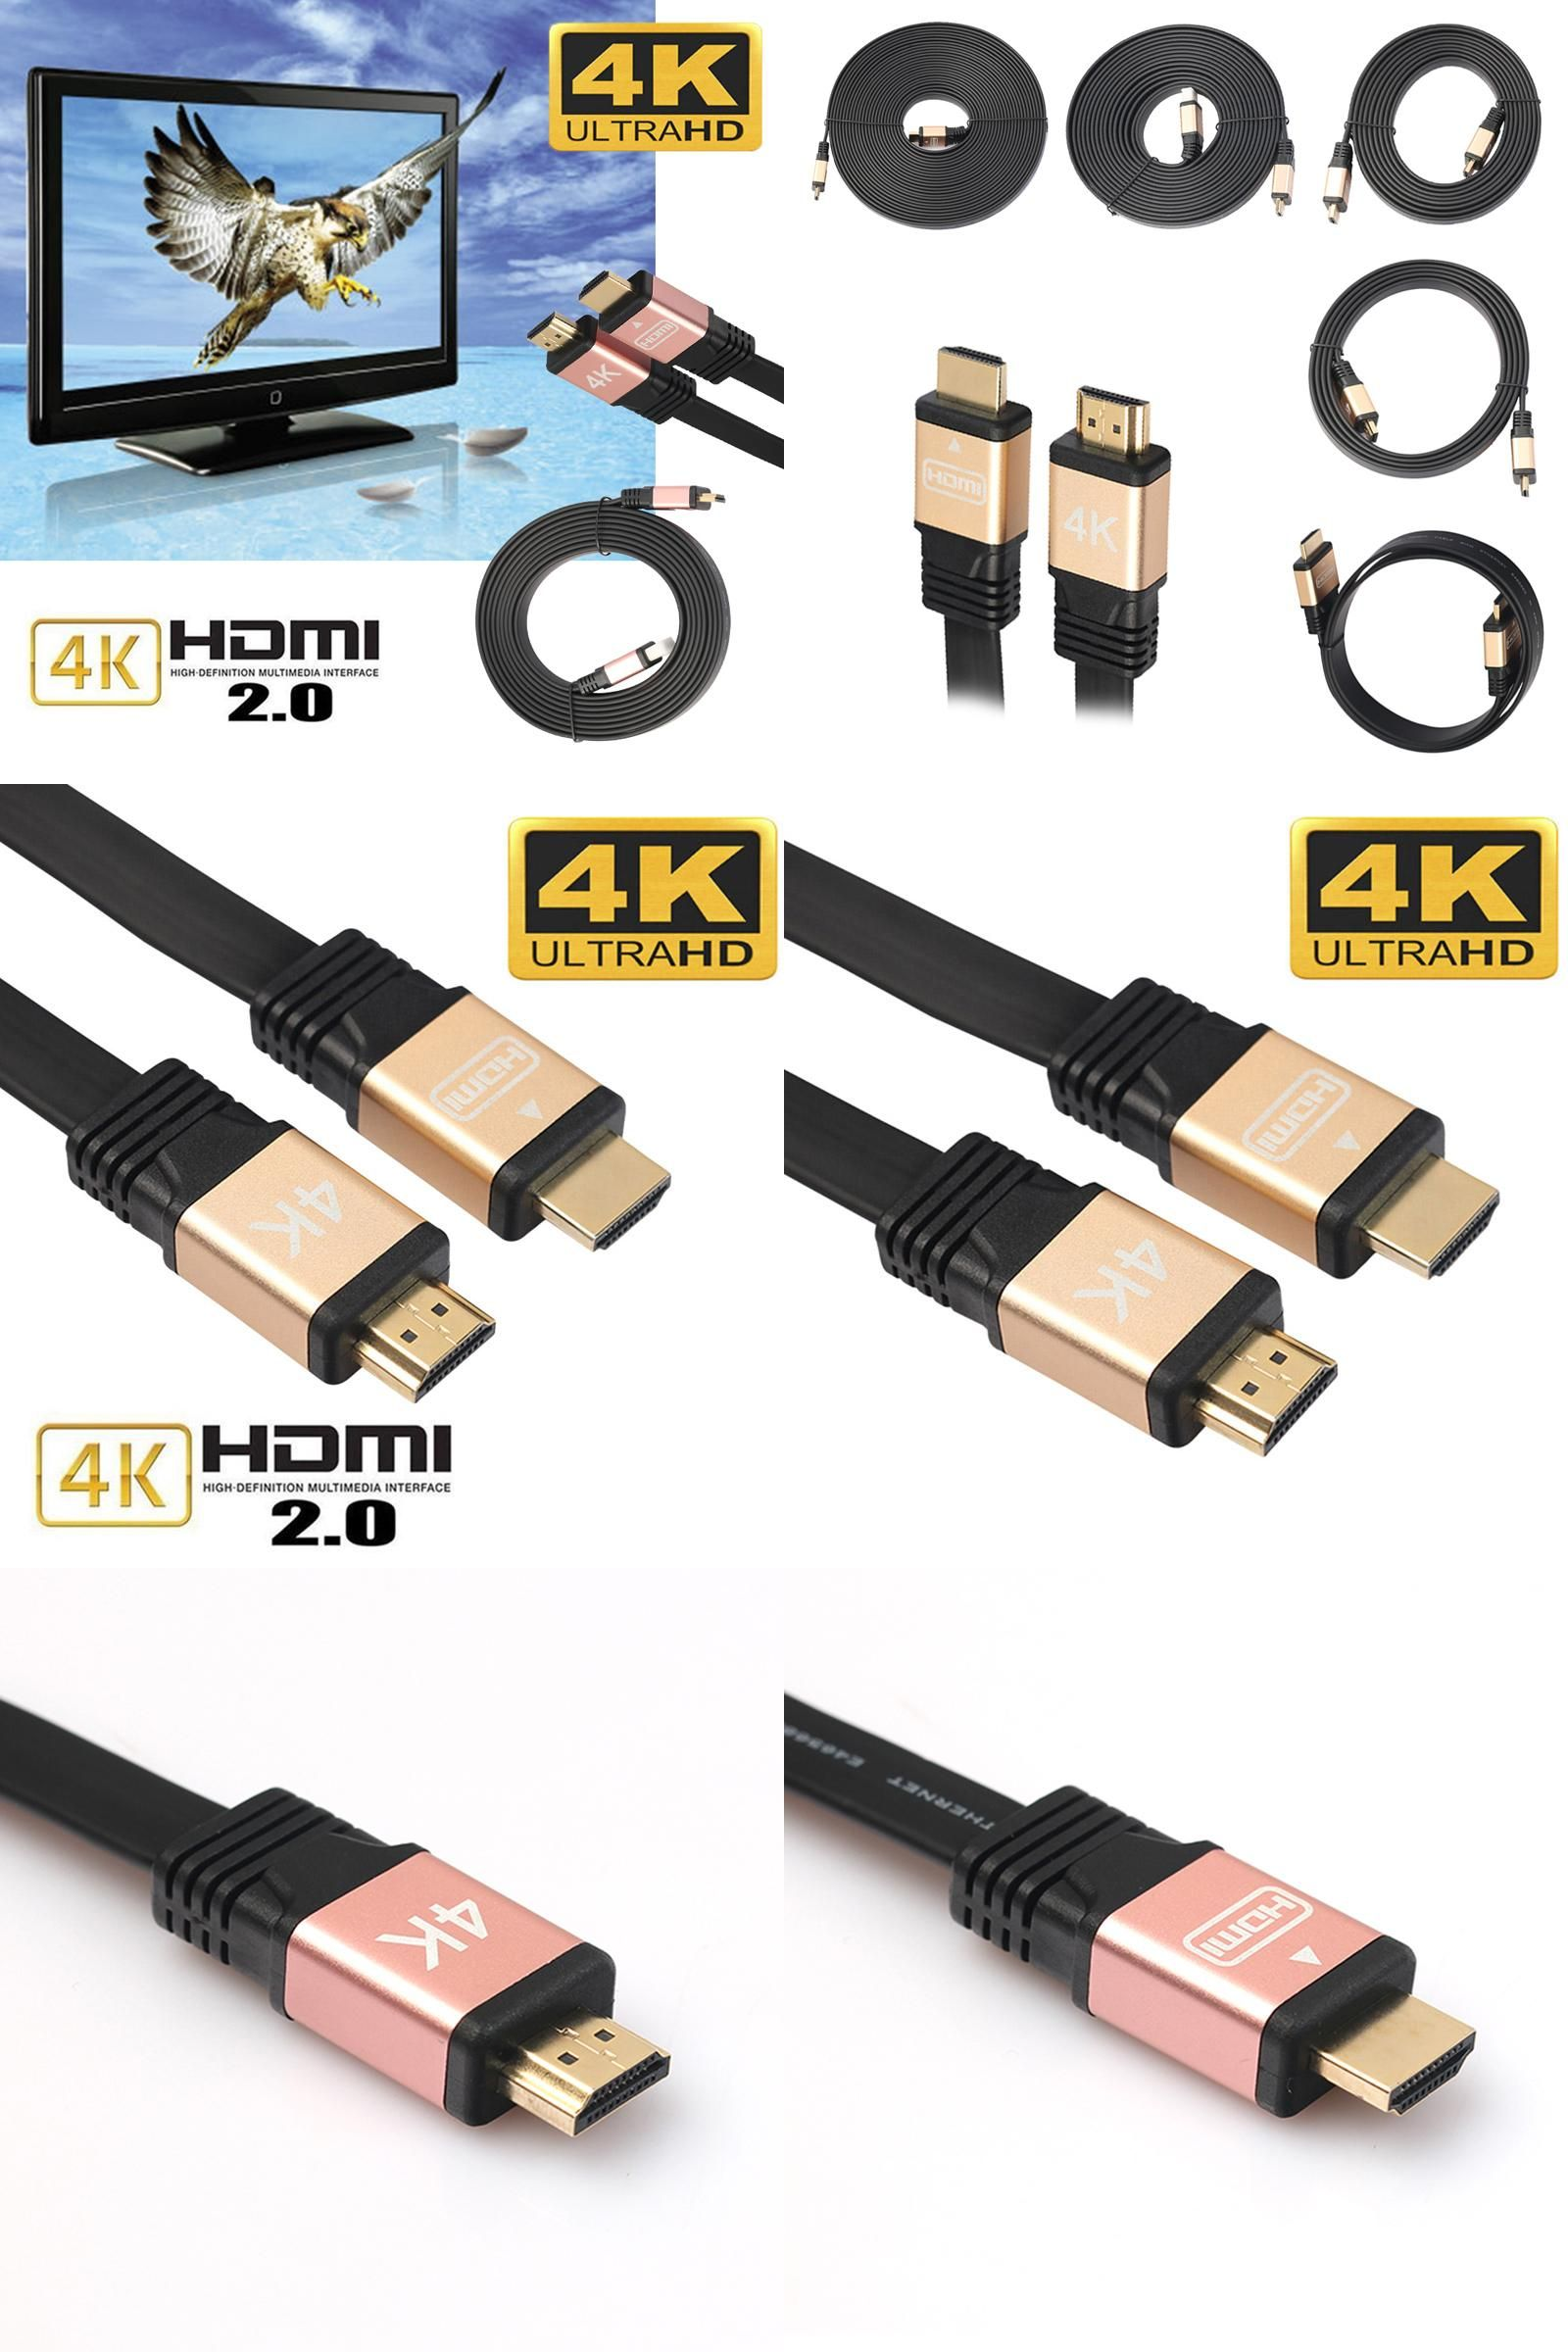 Buy Hdmi Visit To Buy Hdmi Cable Hdmi To Hdmi Cable Ultra High Speed Hdmi